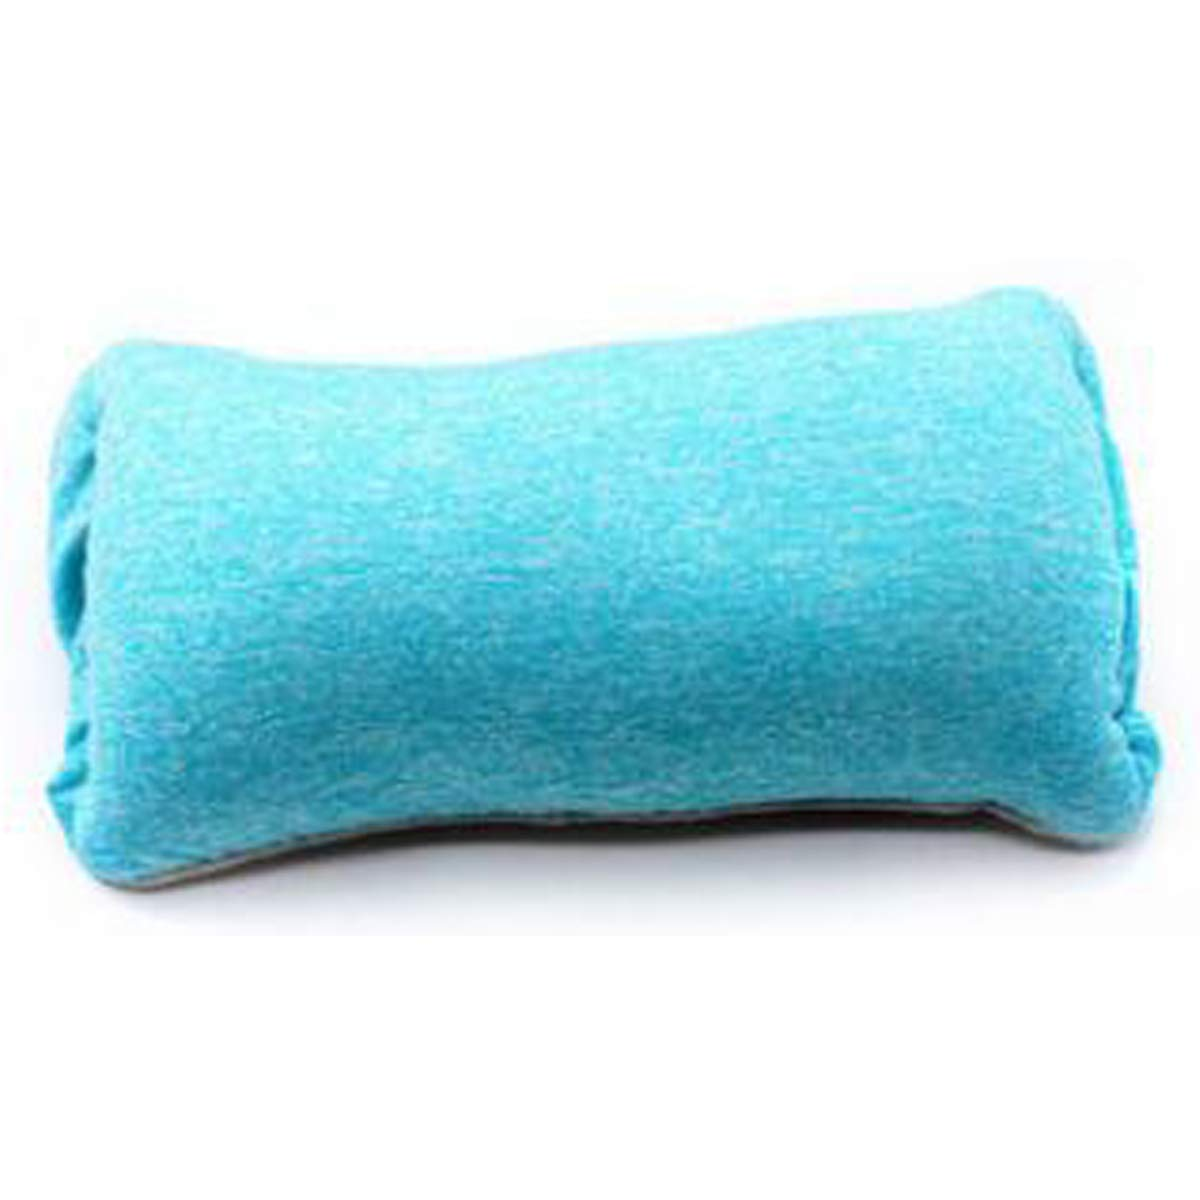 IshowStore Cotton Eye Mask and Travel Pillow-Two in One, Suitable for Travel Breaks and Office Naps (Blue) by ISHOWStore